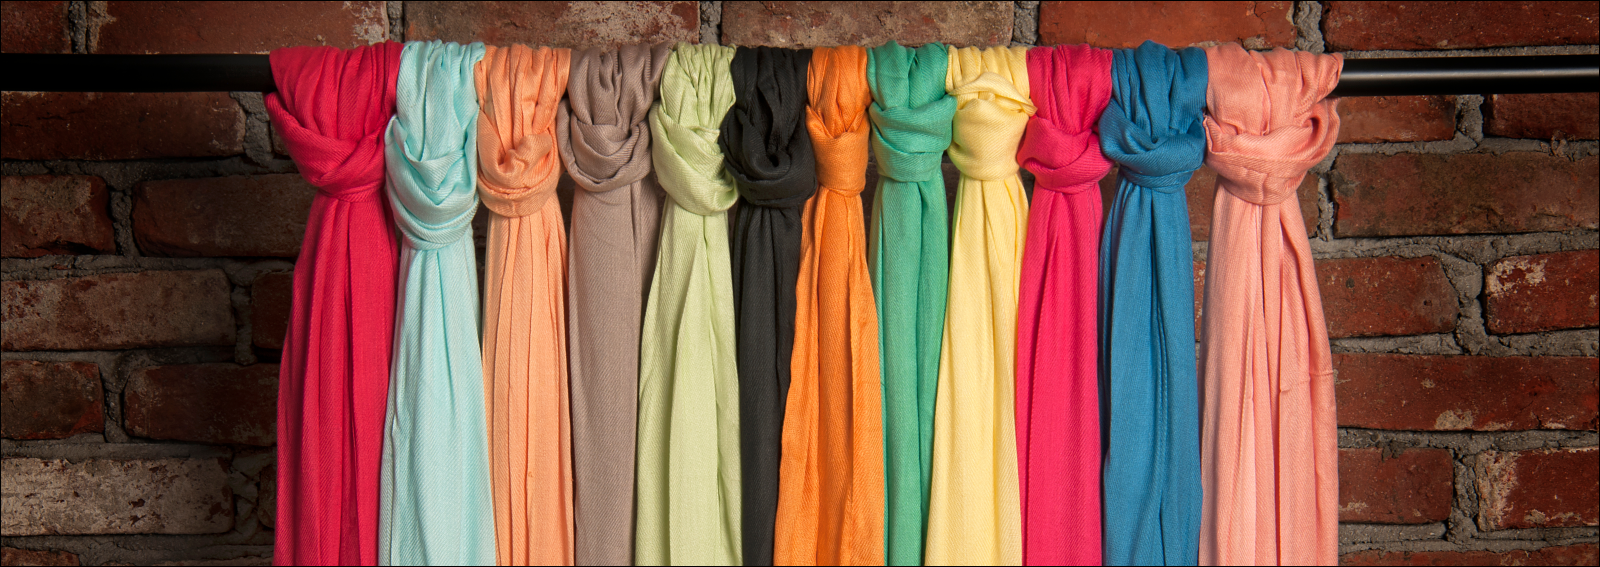 Colored scarves tied on the hanging bar on brick wall background